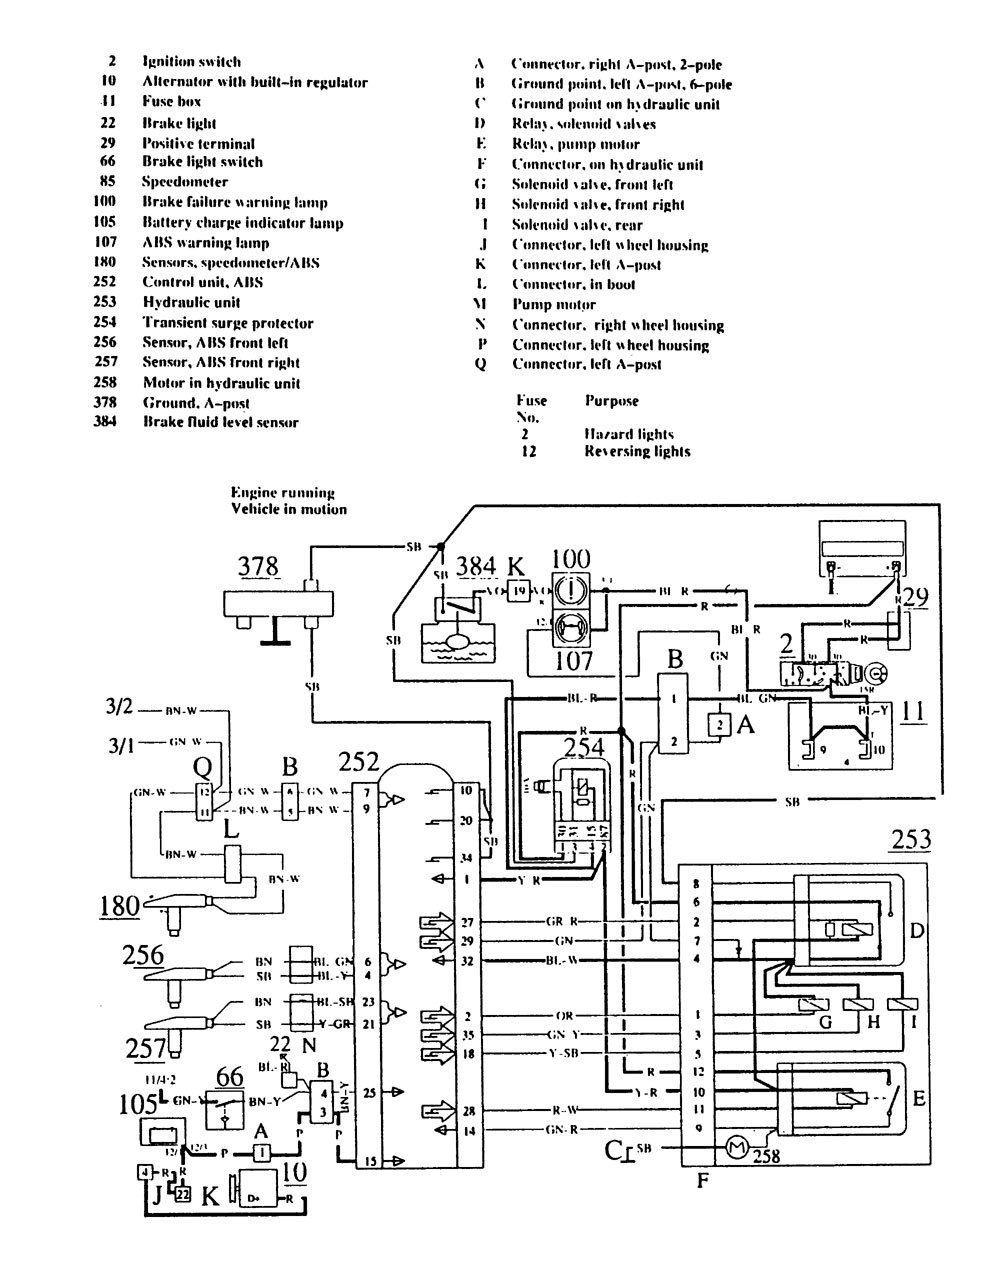 1989 Volvo 740 Relay Diagram Wiring